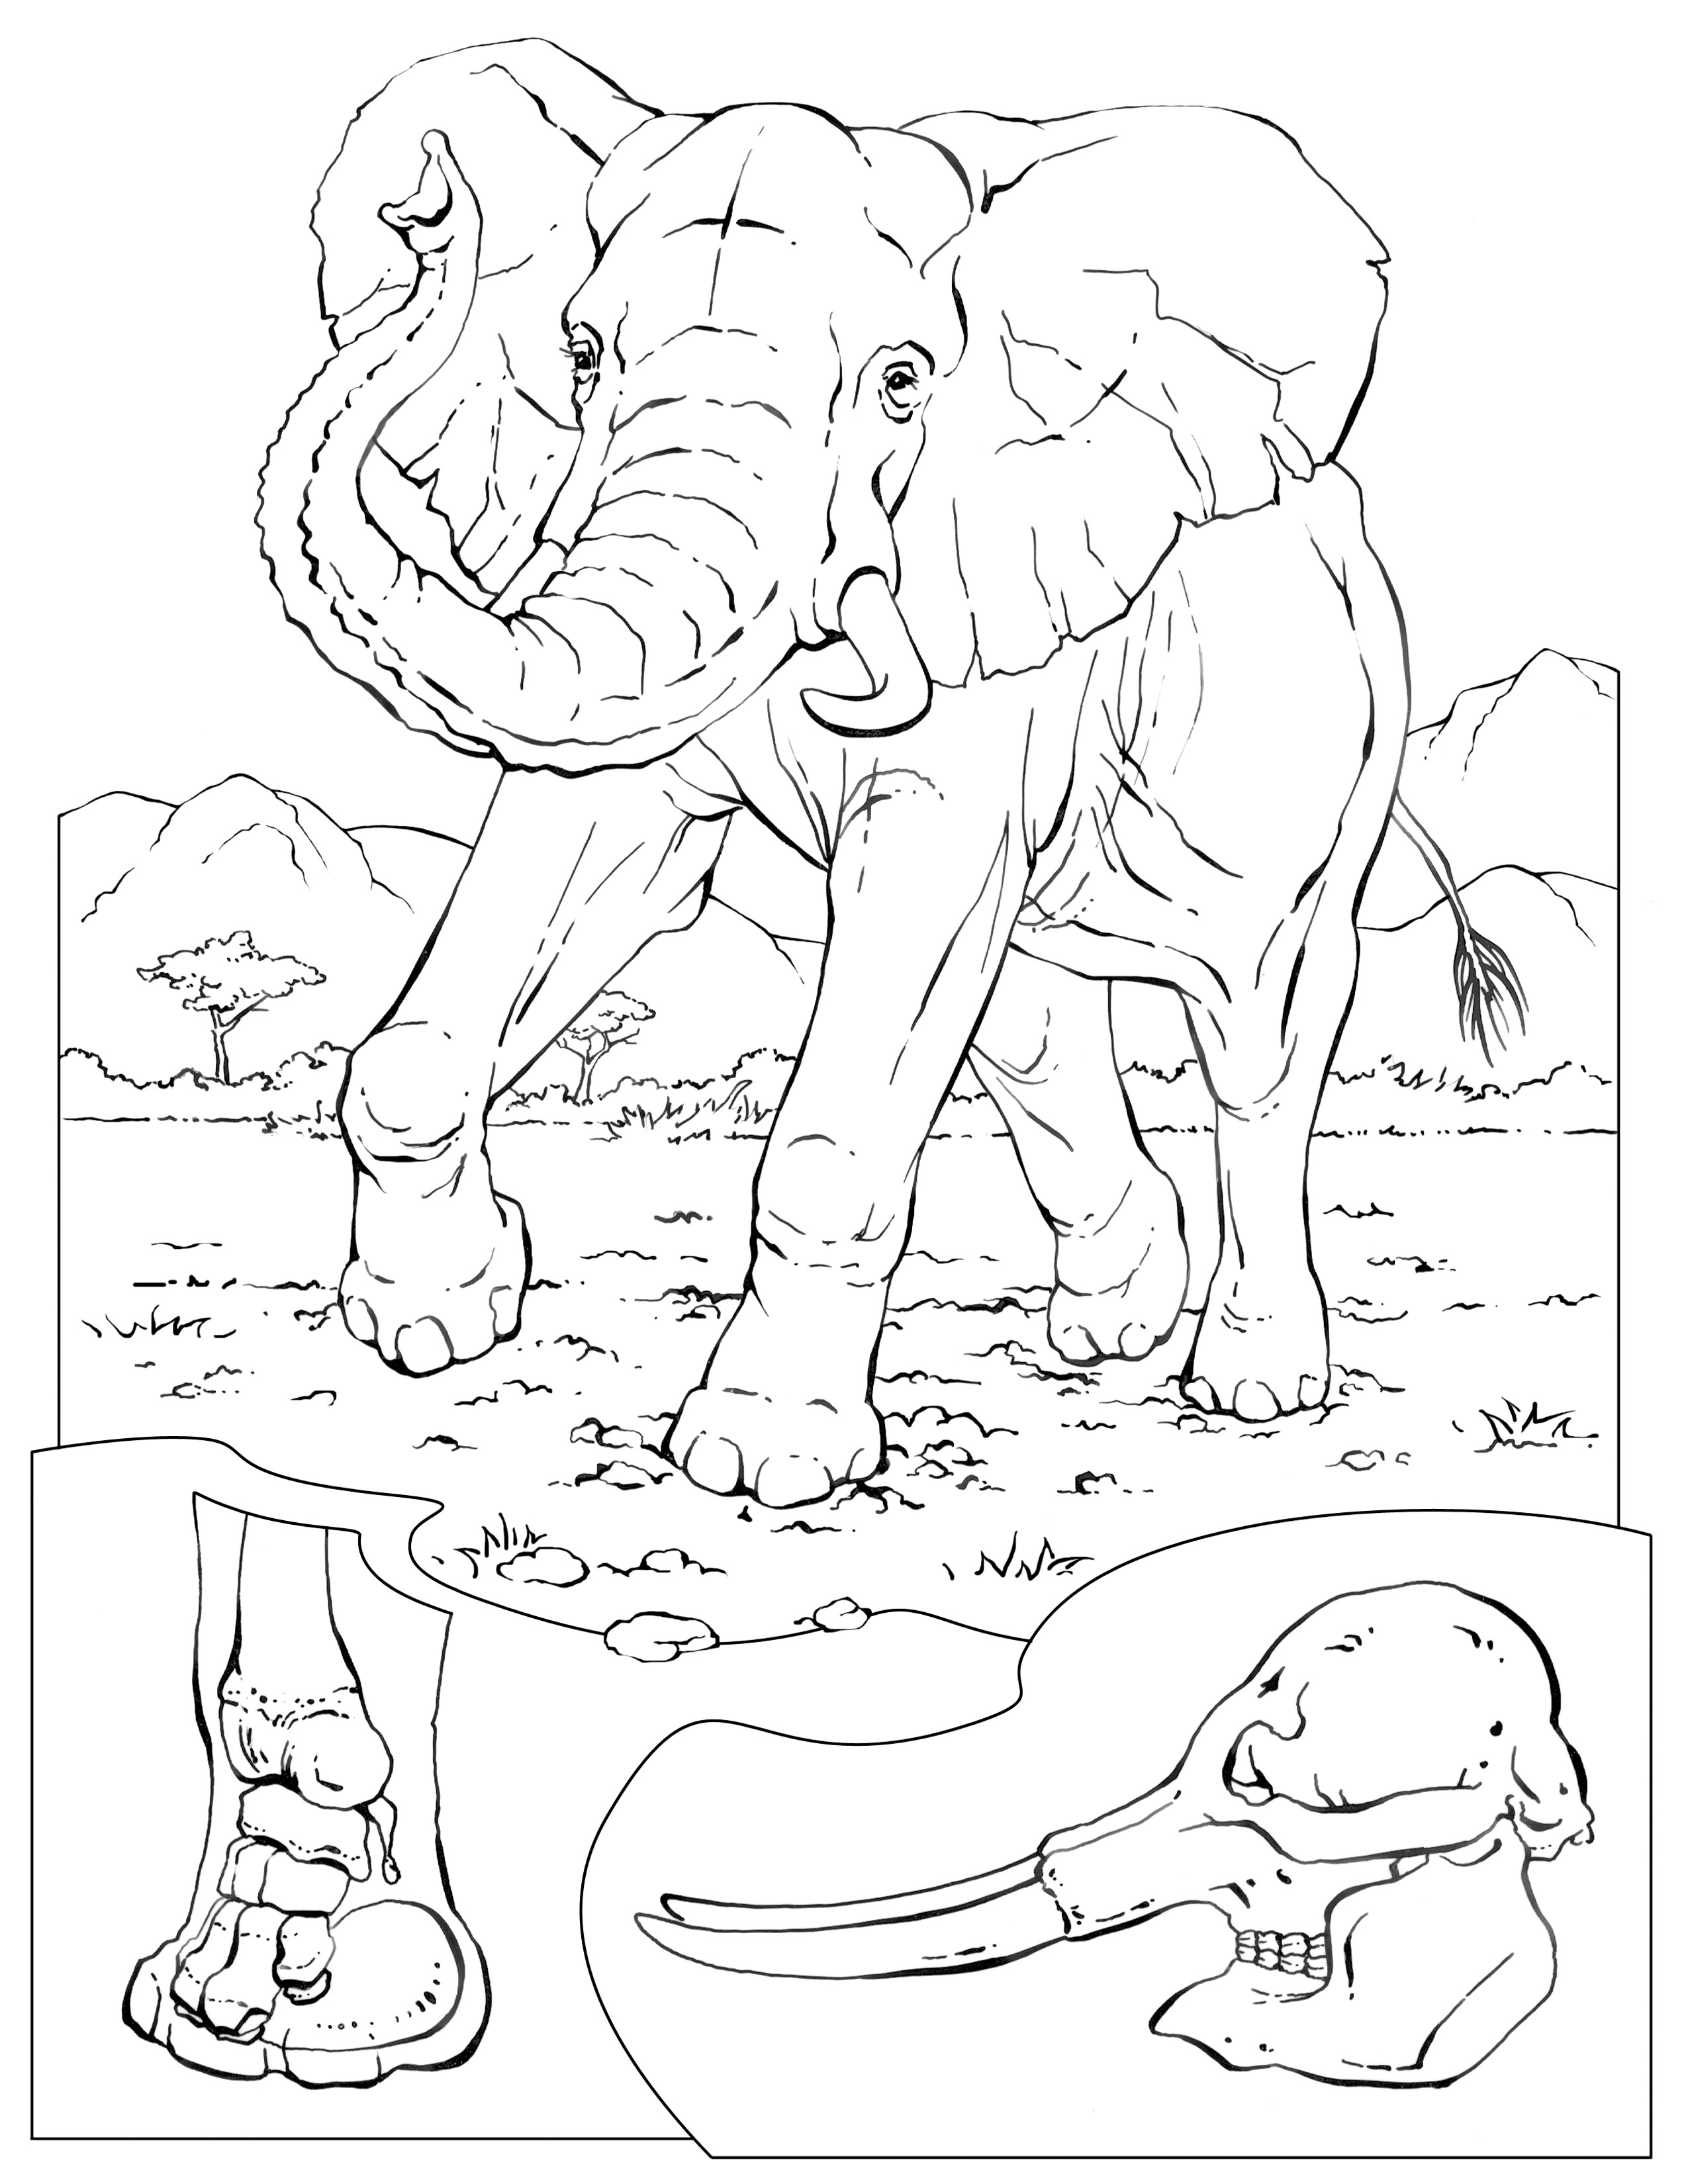 www coloring sheets free printable elephant coloring pages for kids sheets www coloring